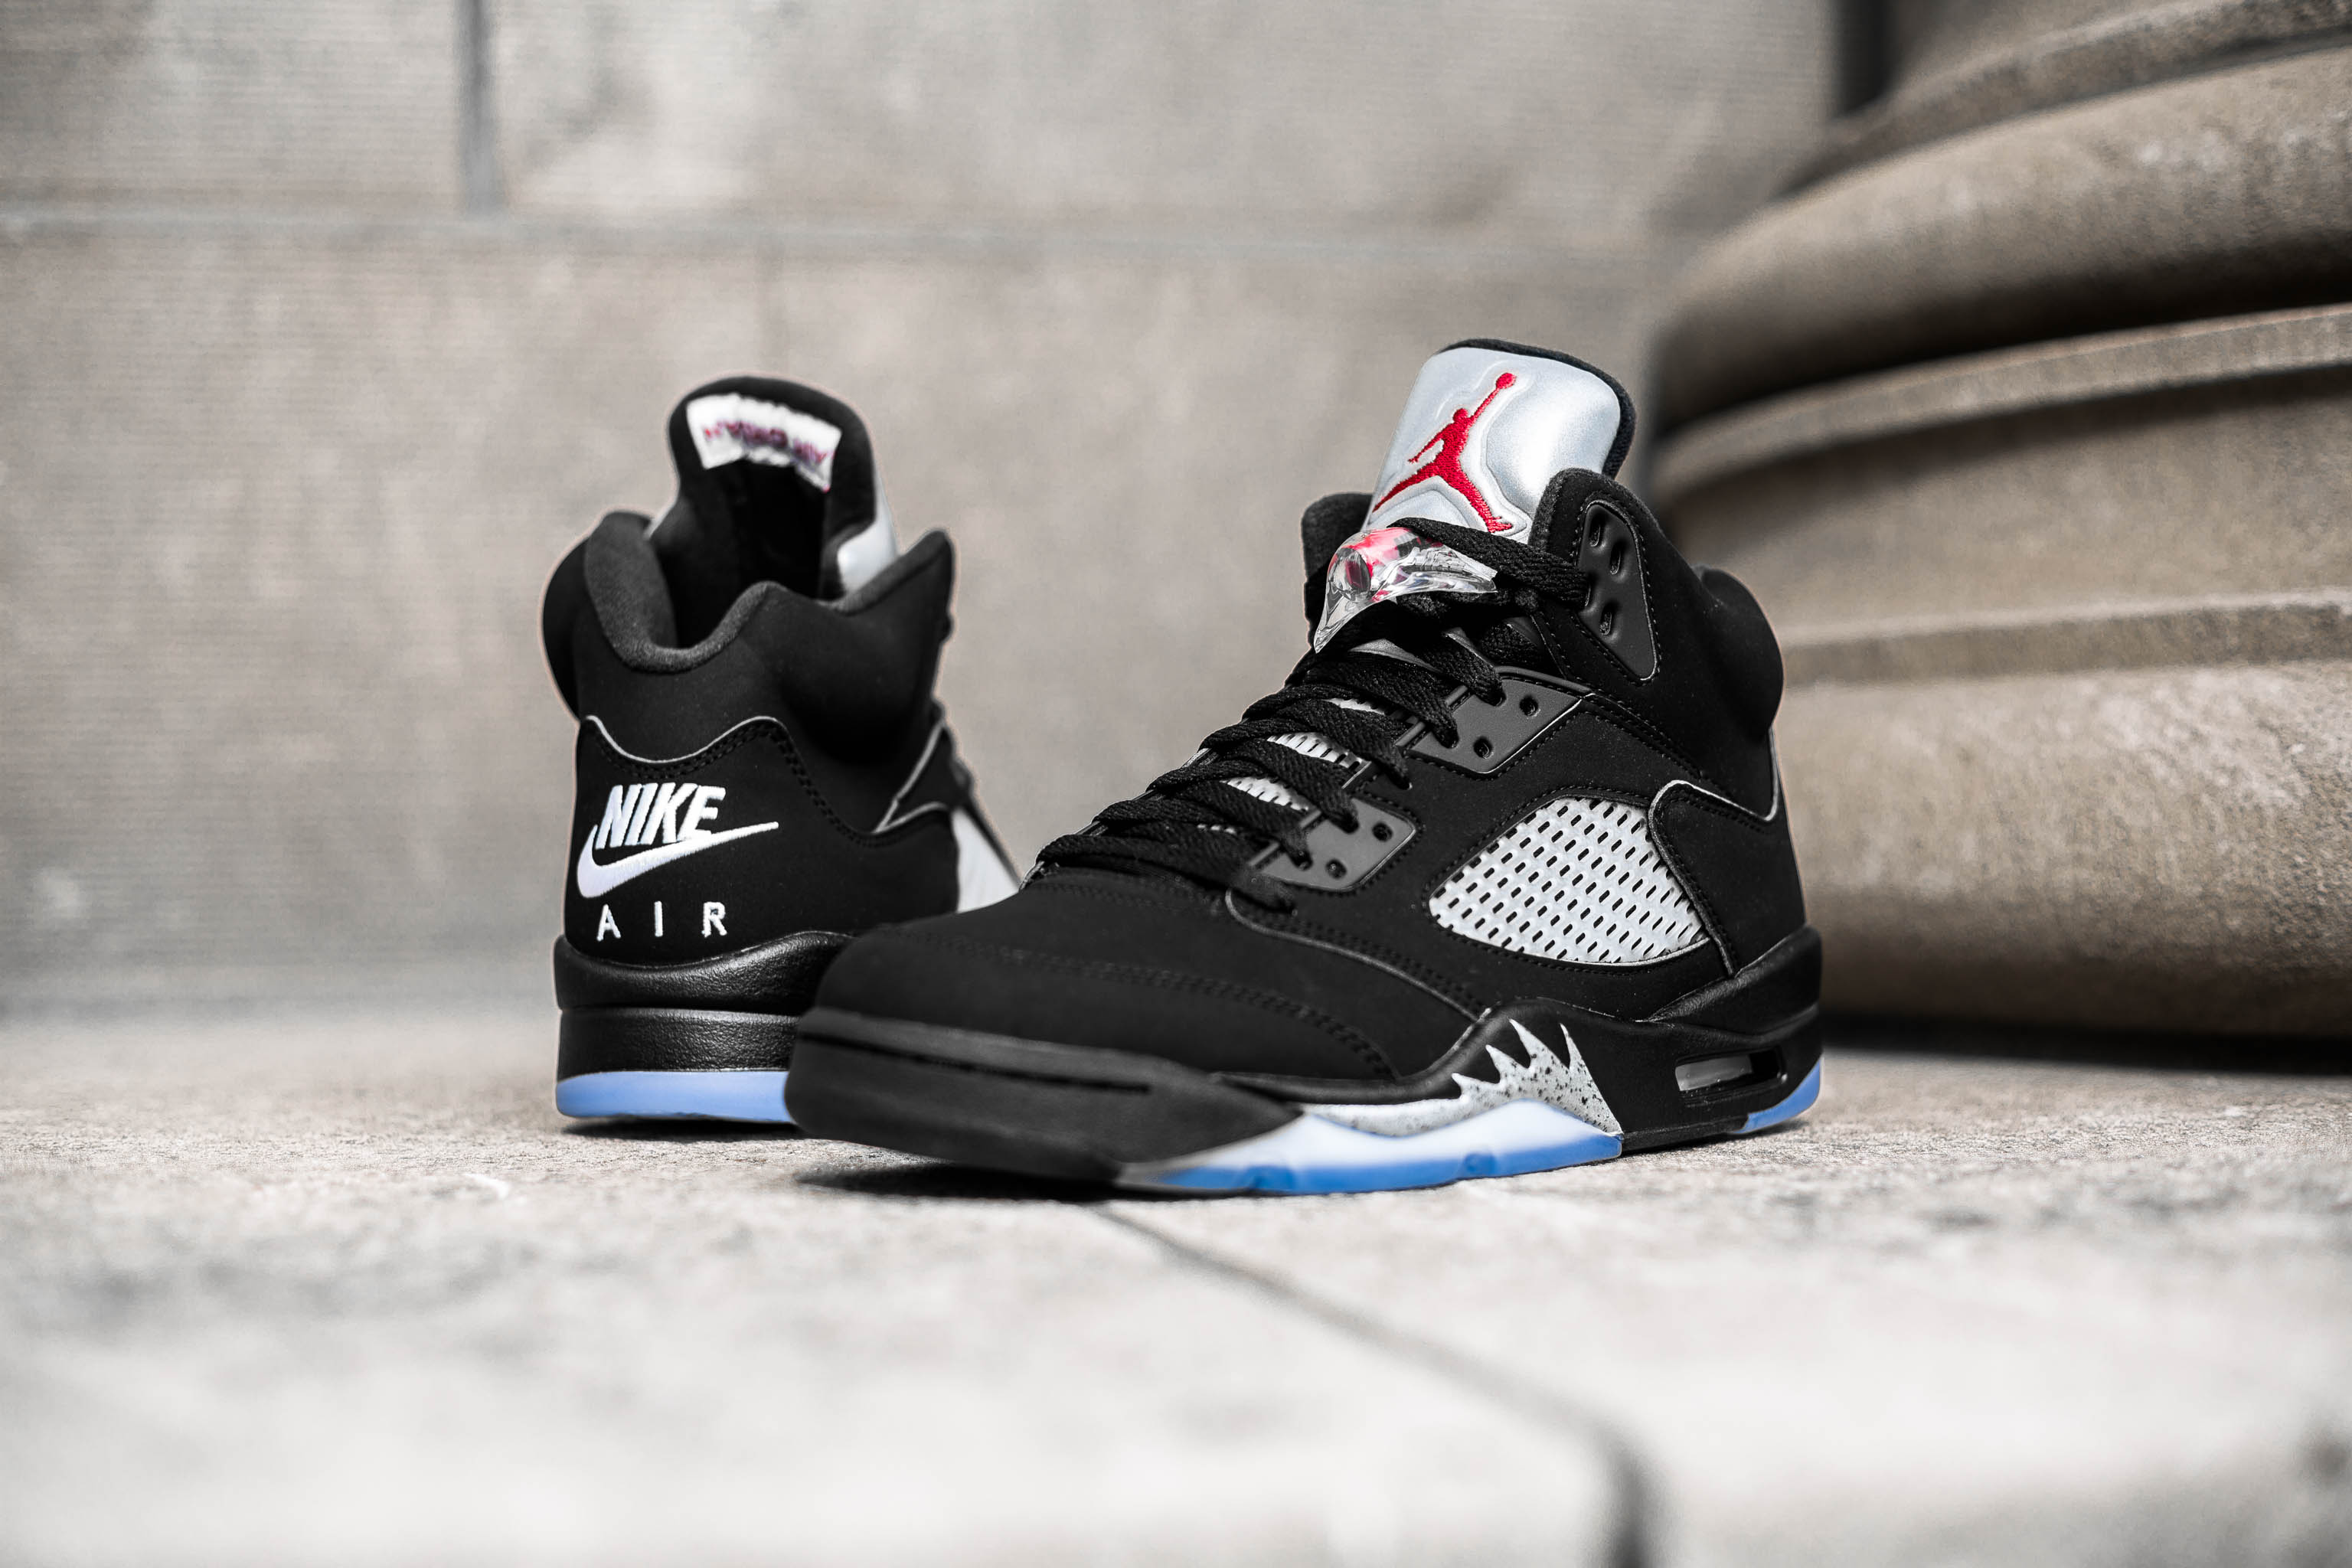 d5e150b5d4c The OG Air Jordan 5 Retro is back with a vengeance, this time with the  original details in place. To maintain the authenticity, Air Jordan has  included the ...